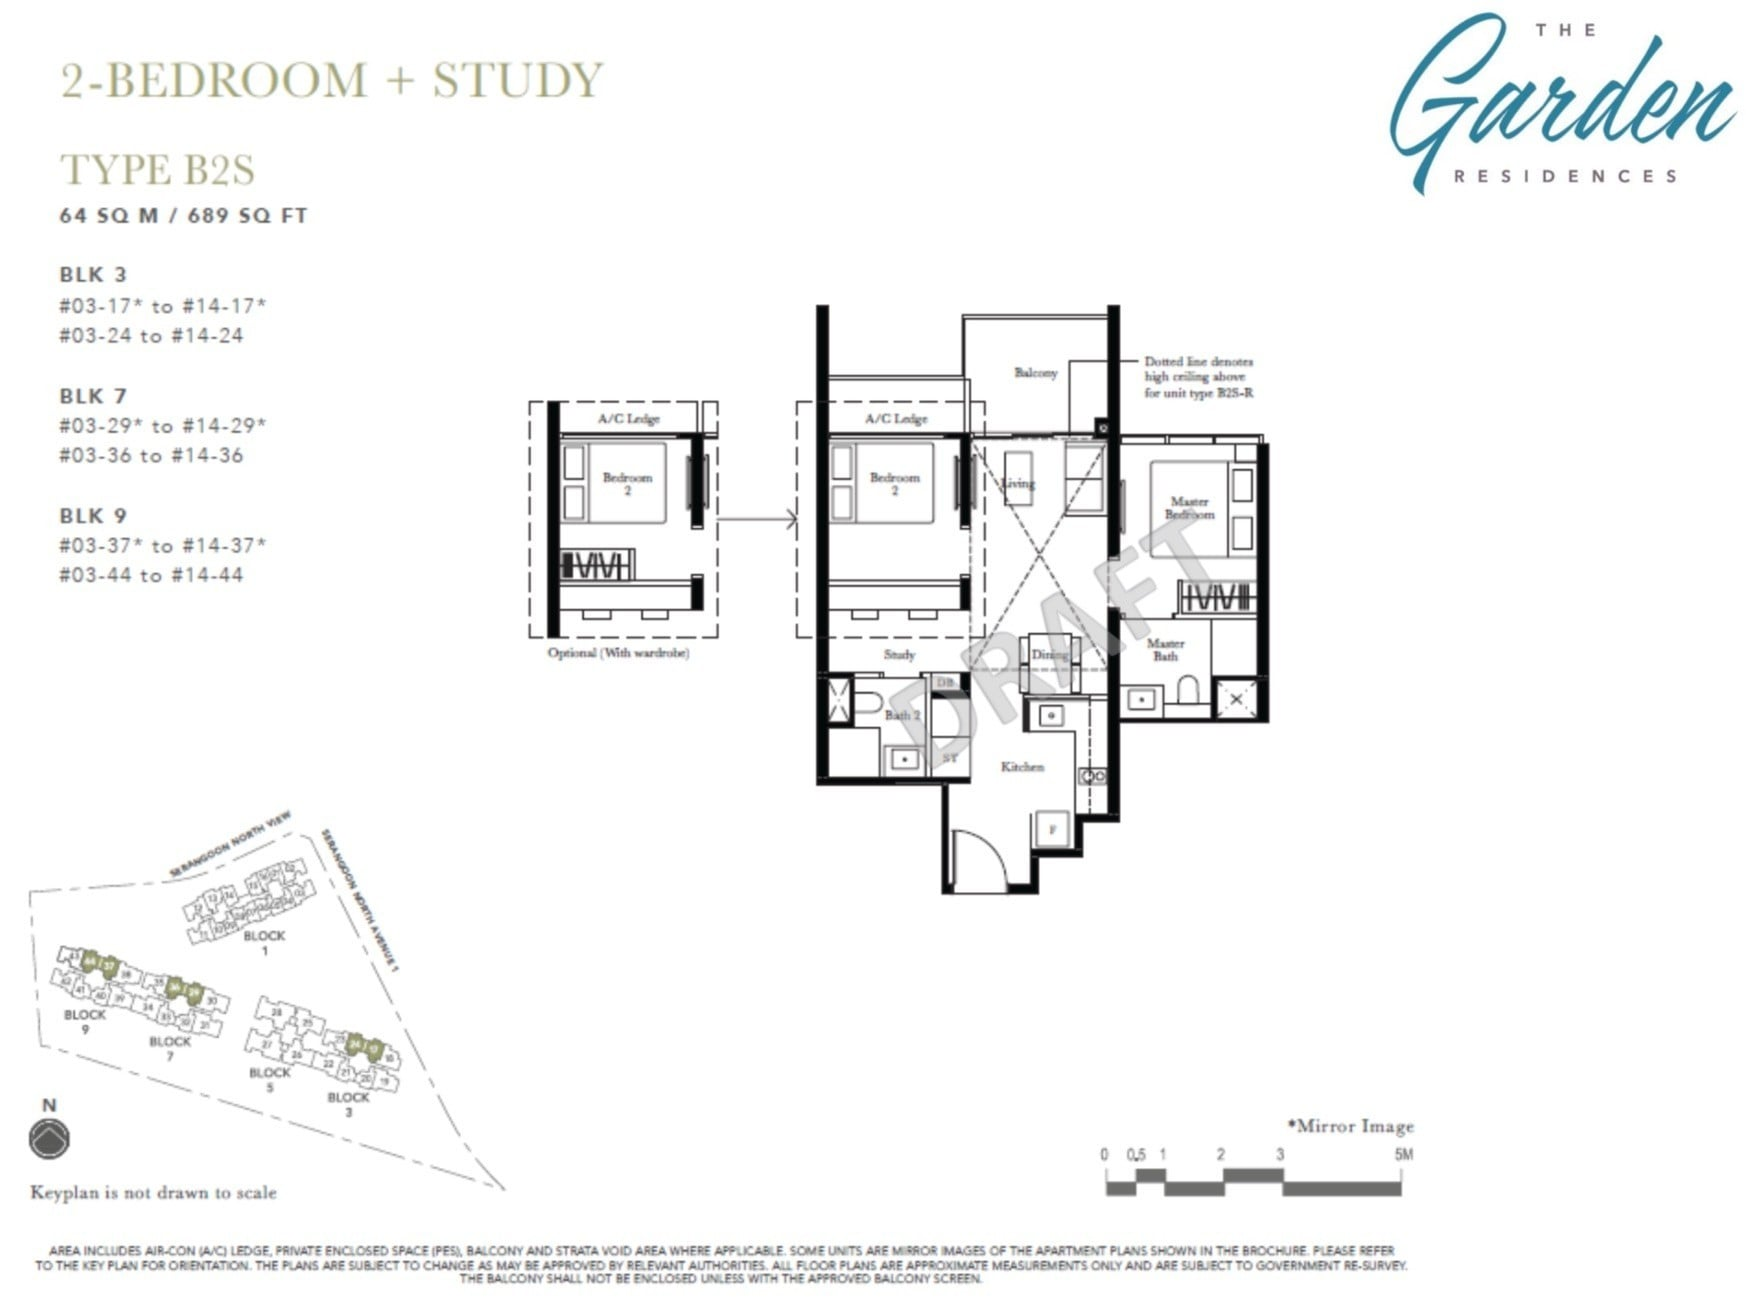 2br-the-garden-residences-floor-plan